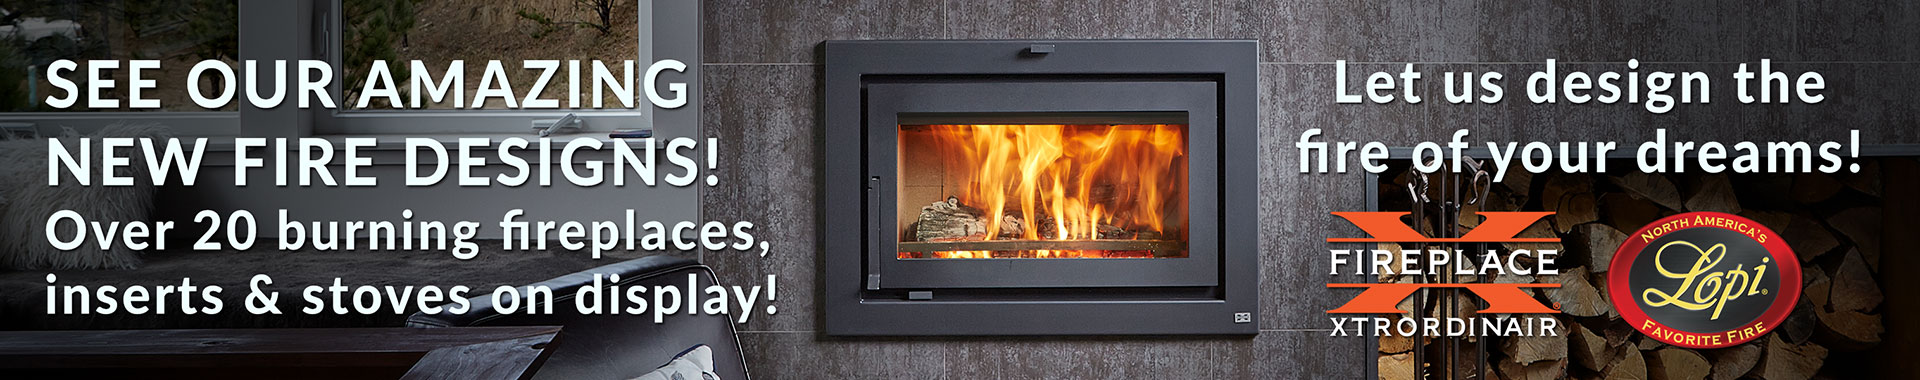 See our amazing new fire designs!